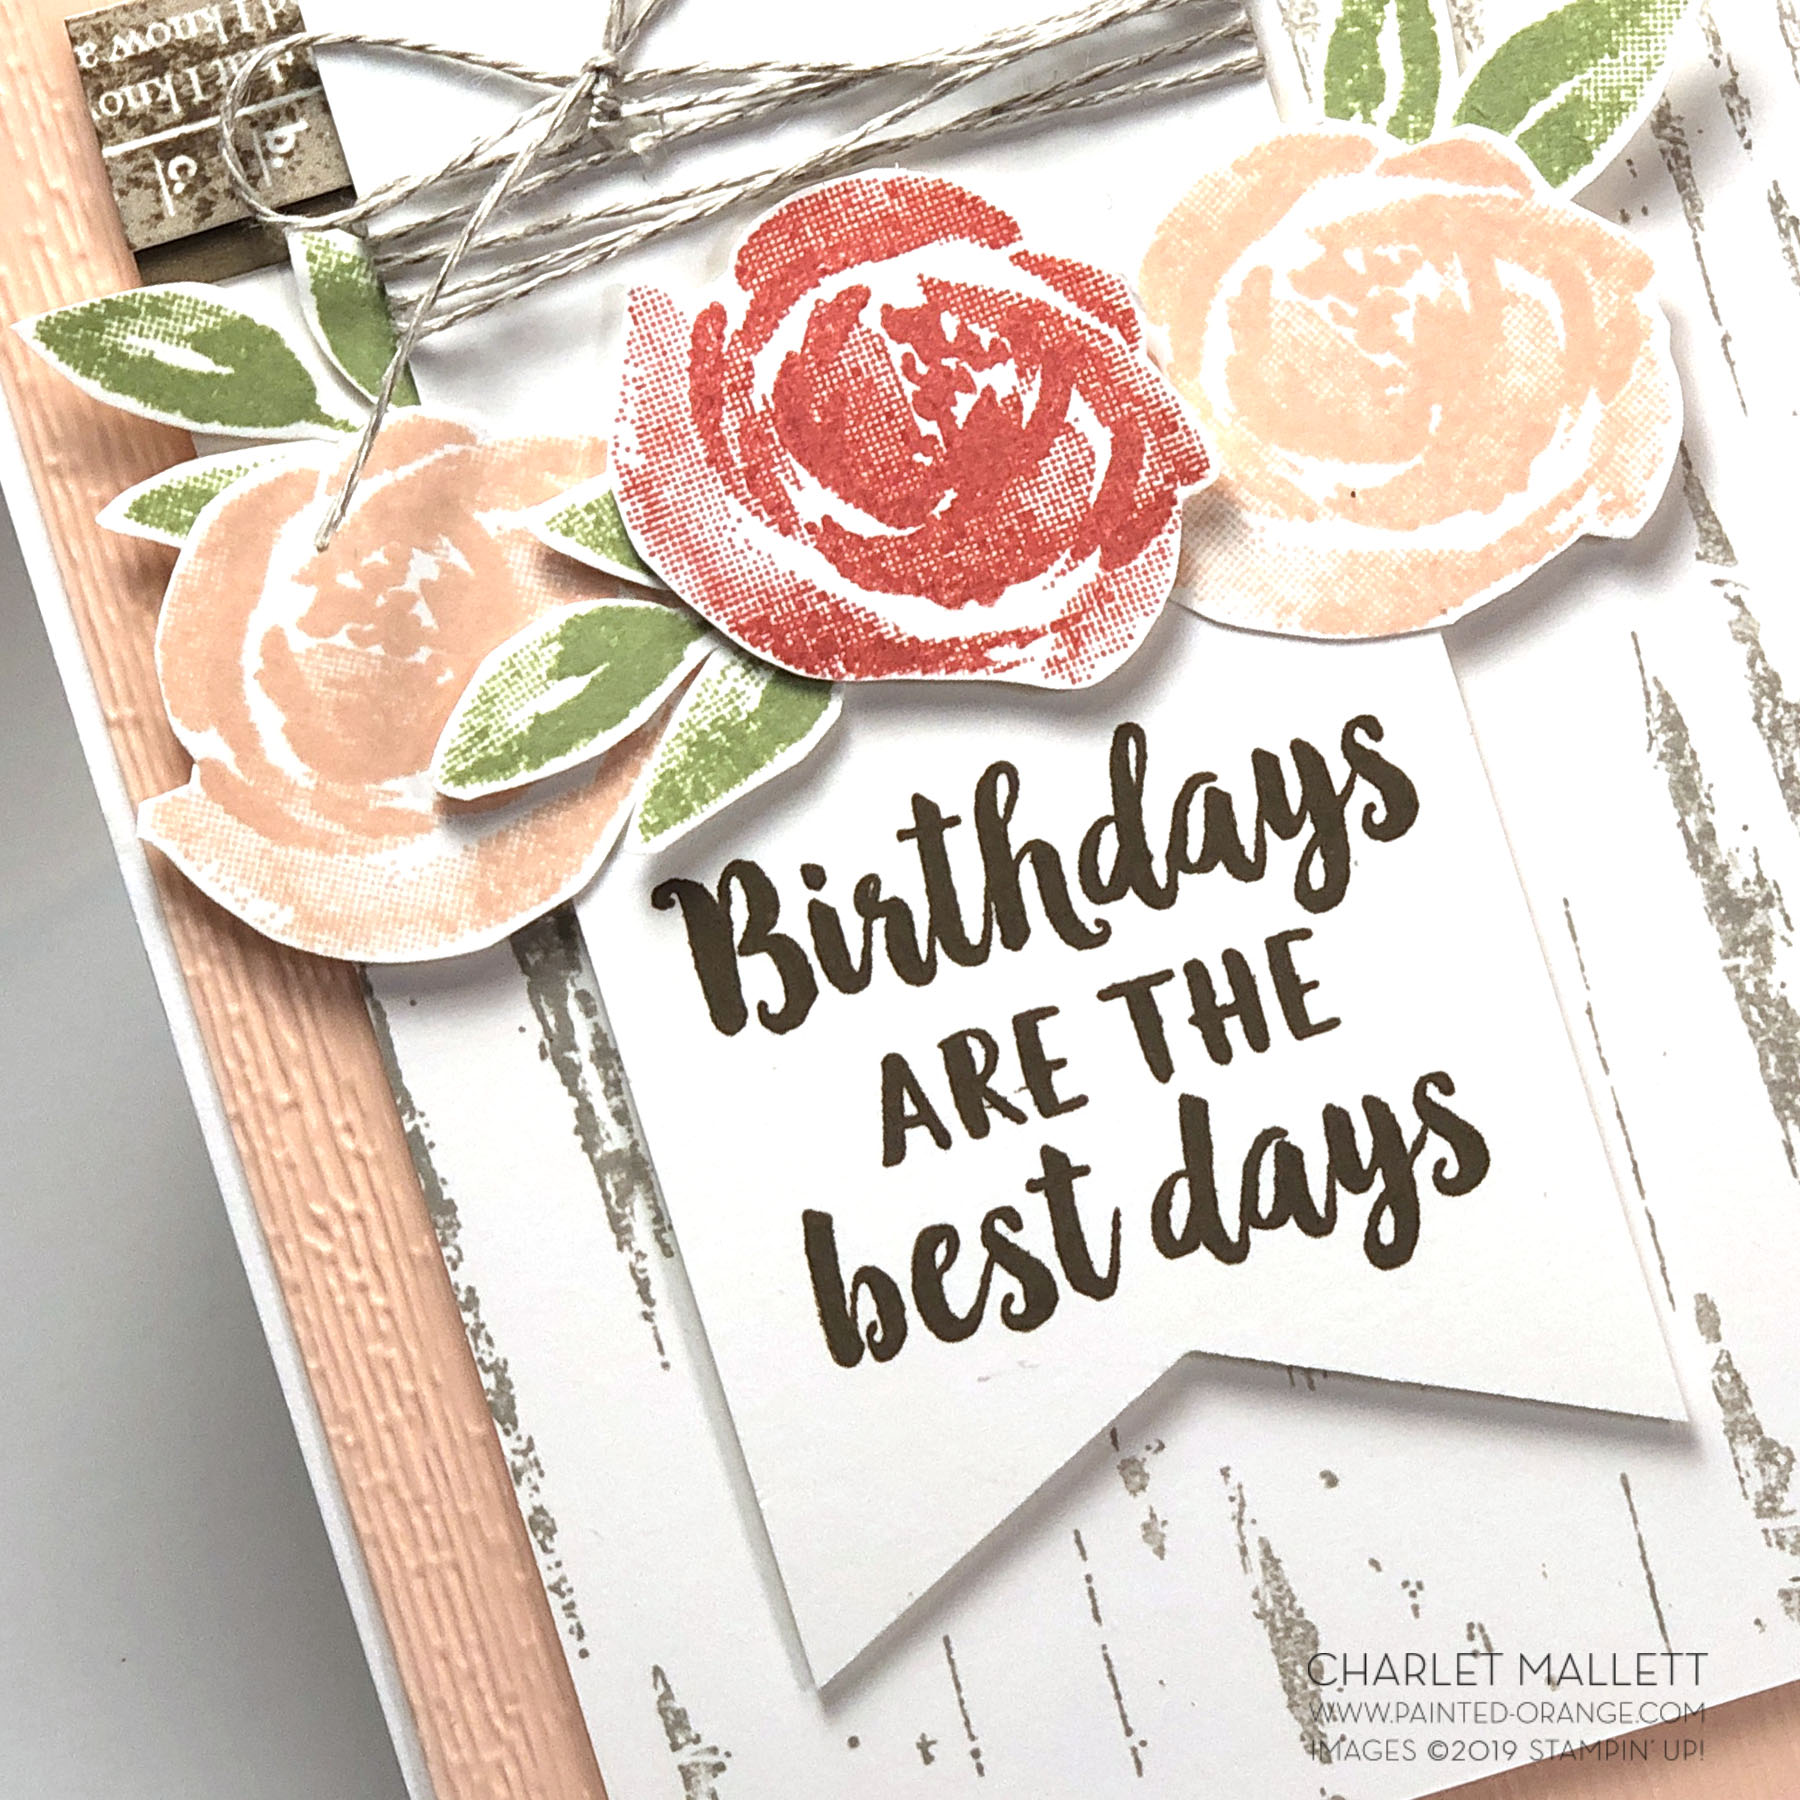 Birch and Beautiful Friendship Birthday card - Charlet Mallett, Stampin' Up!